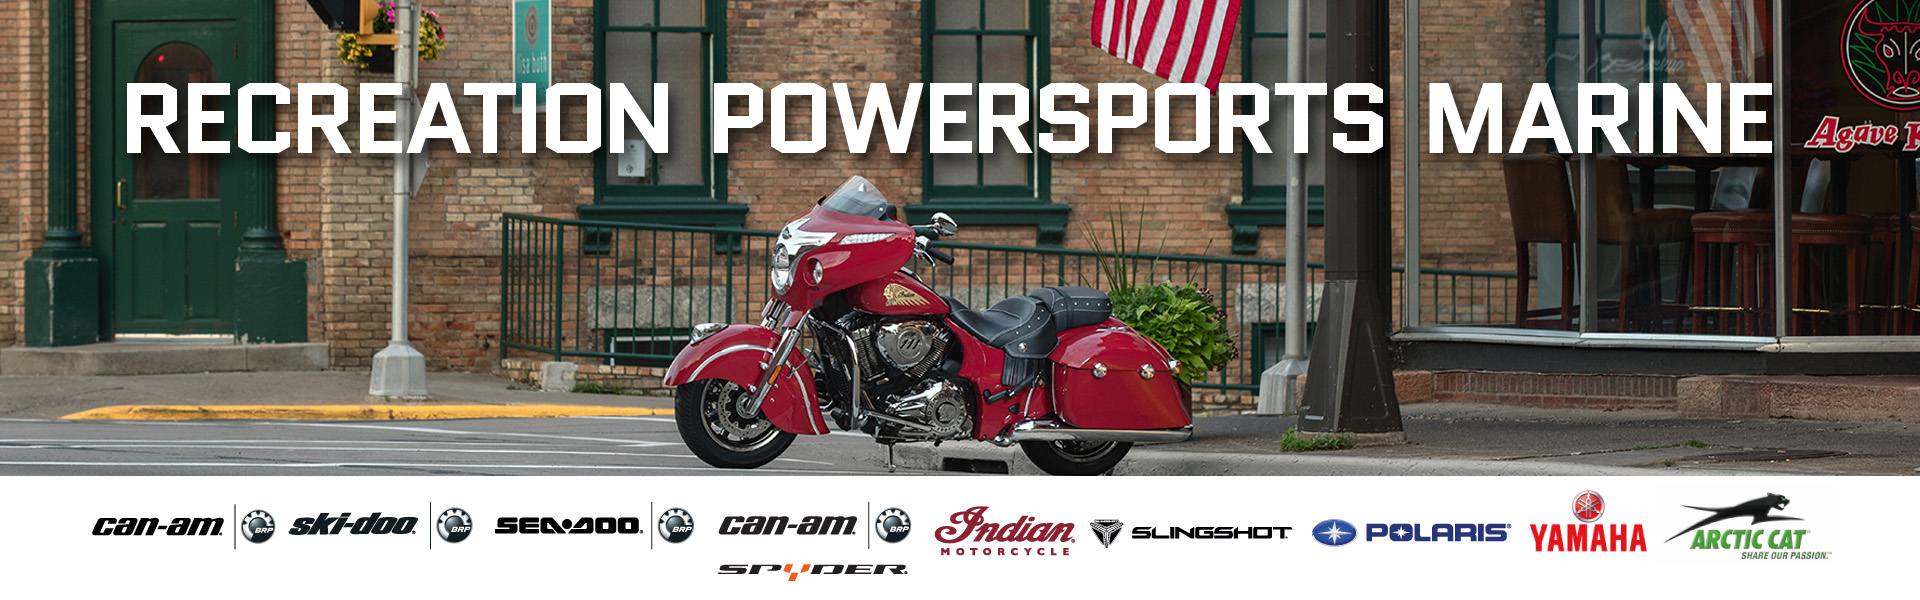 Can-am, Ski-doo, Sea-doo, Can-am Spyder, Indian Motorcycle, Slingshot, Polaris, Yamaha, Arctic Cat